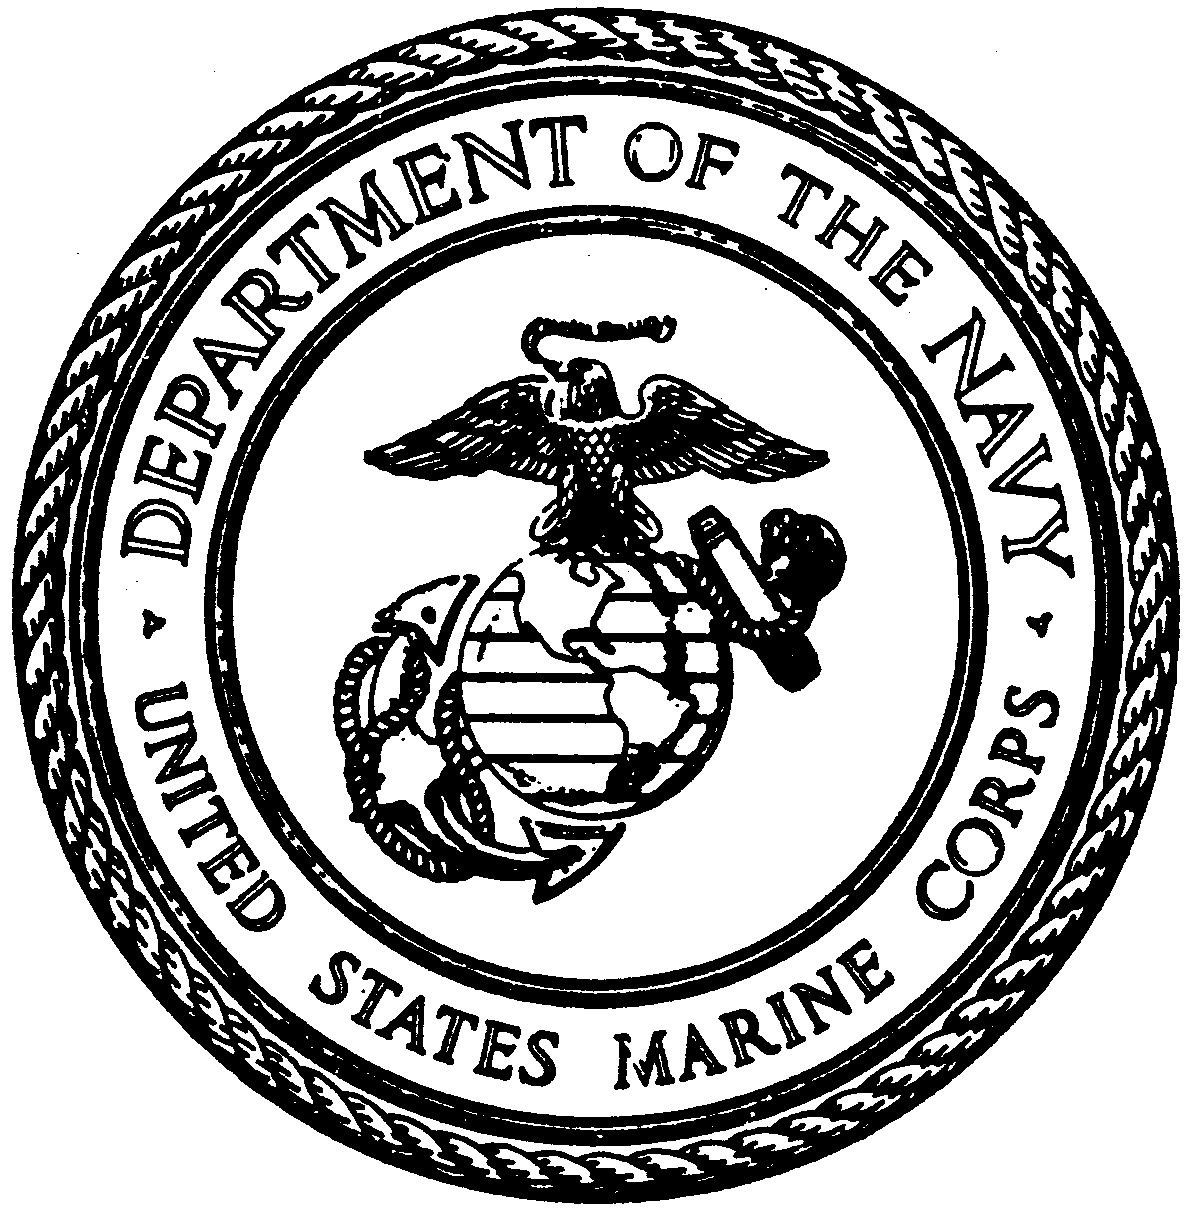 usmc emblem drawing at getdrawings com free for personal use usmc rh getdrawings com U.S. Marine Emblem Clip Art us marine corps emblem clip art